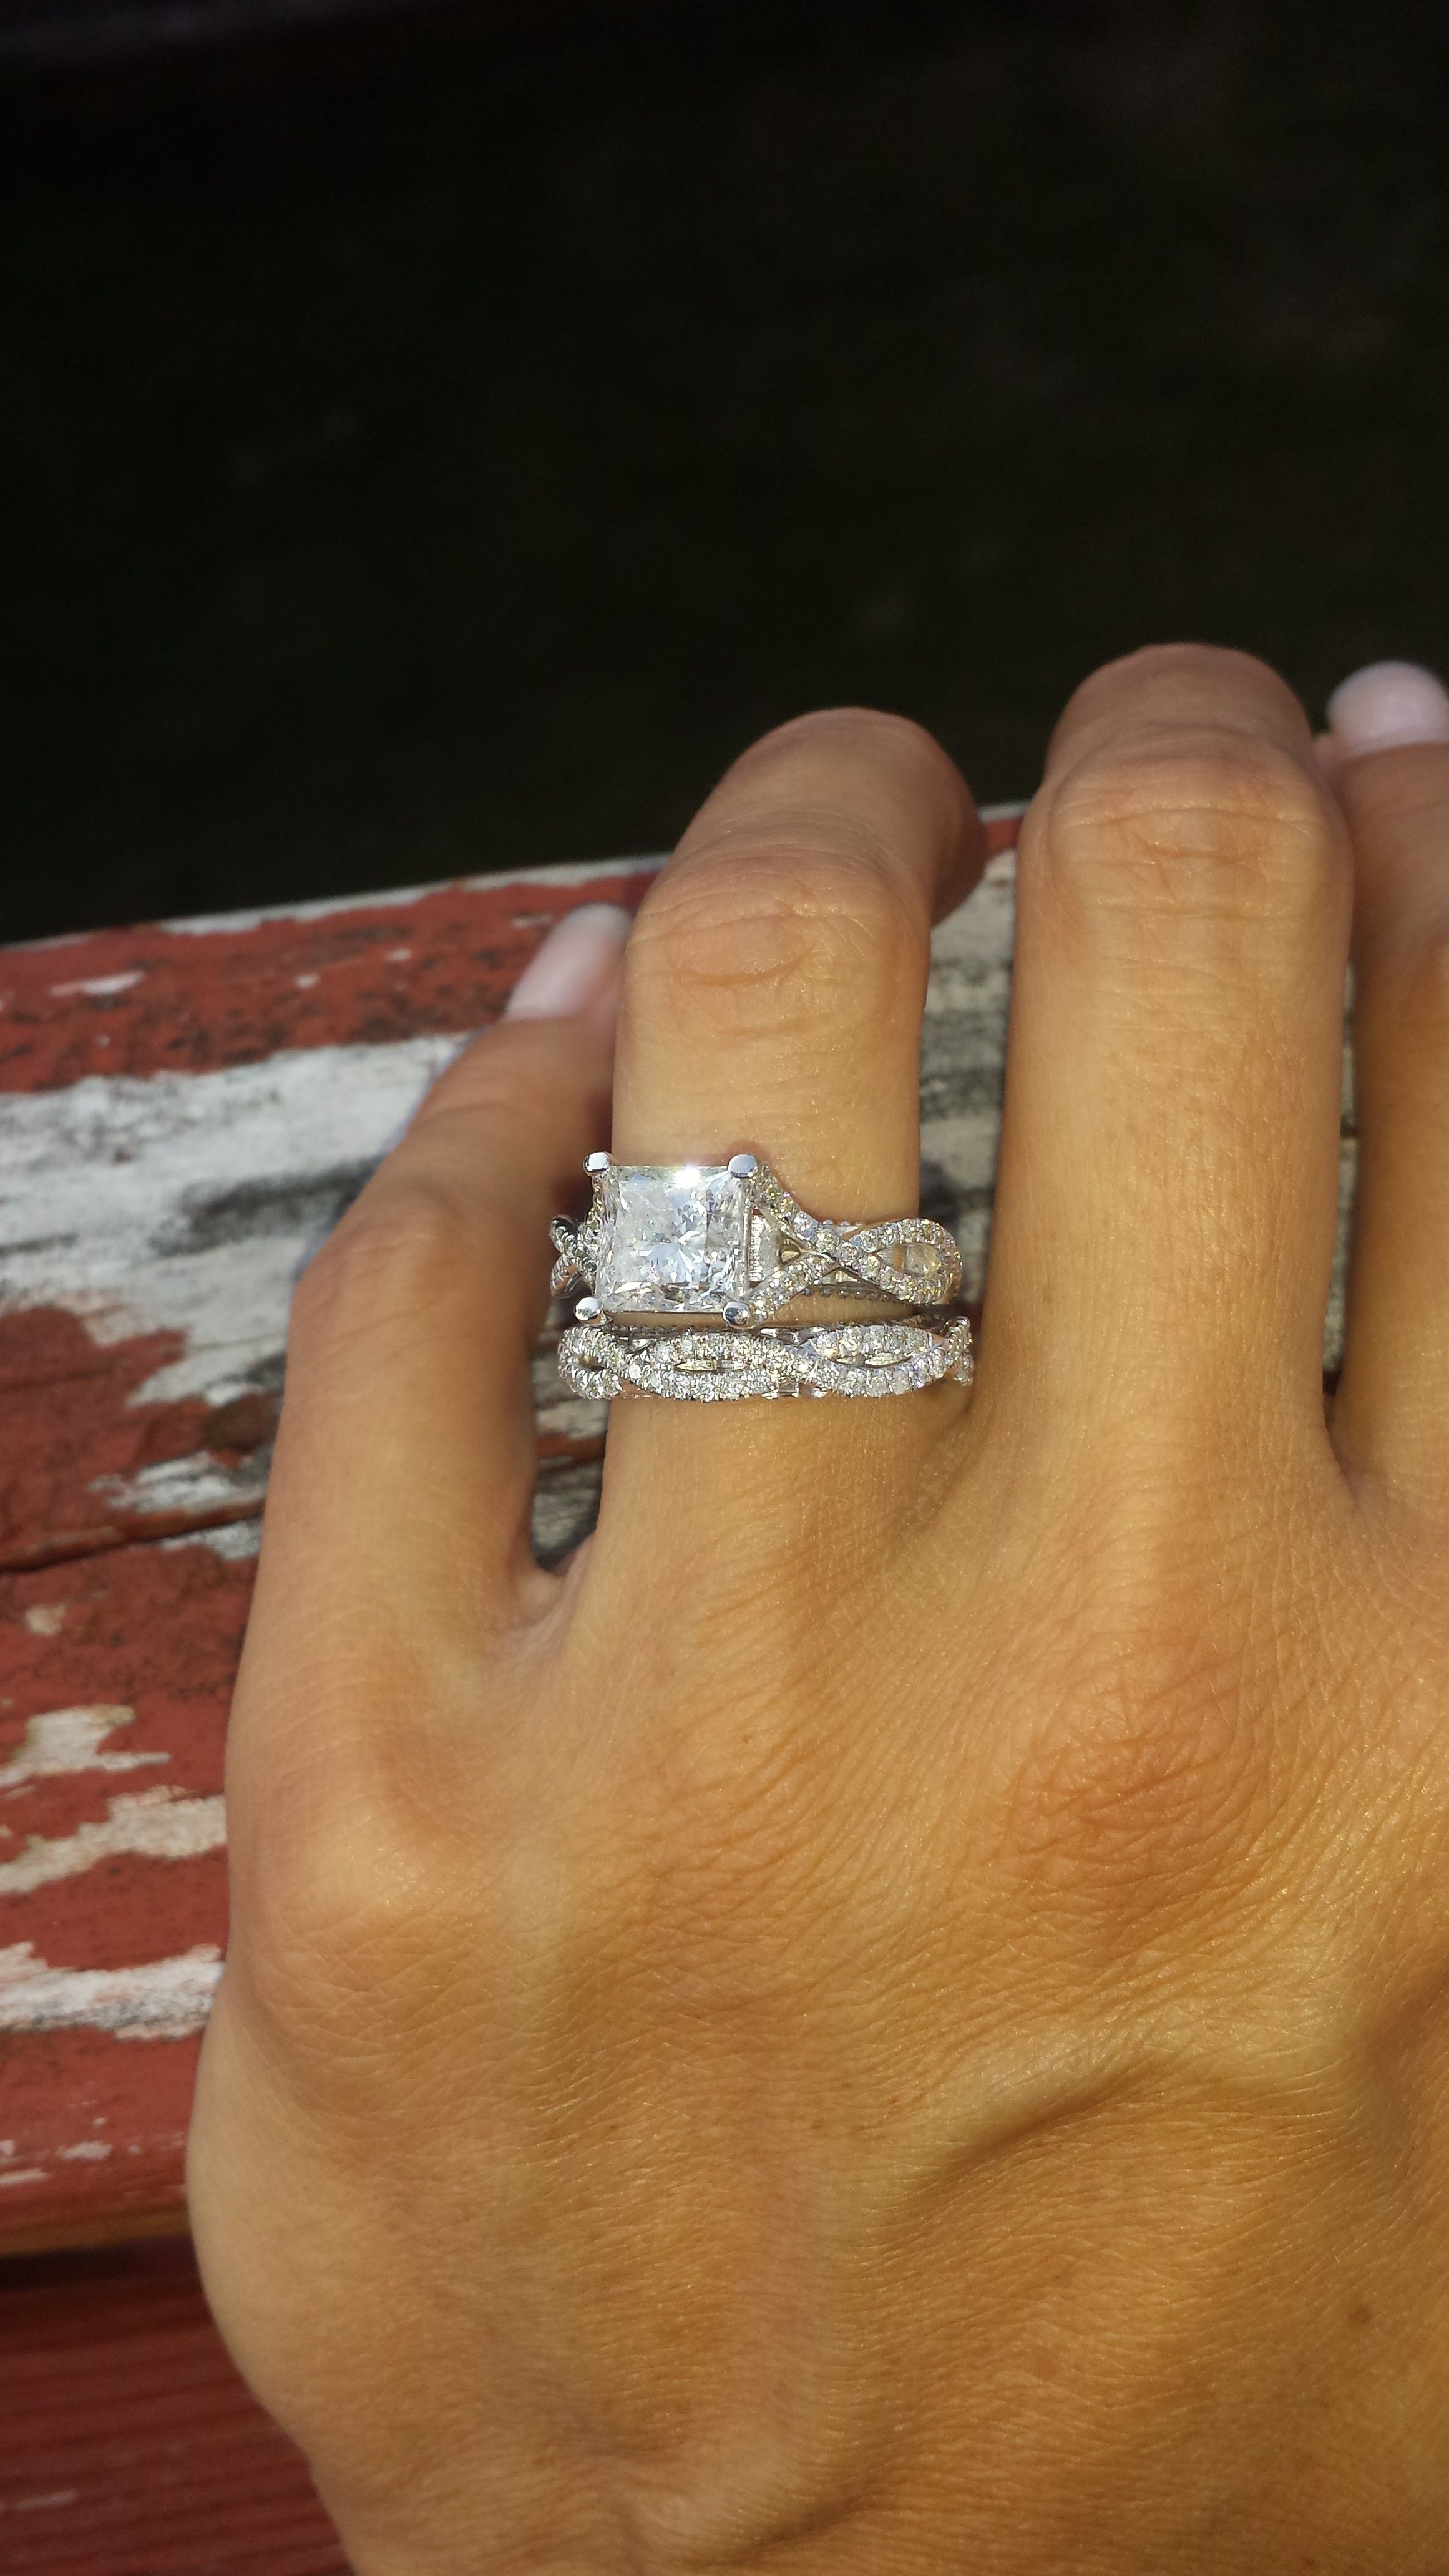 off russell in shows vegas ring reveals diamond karat wilson engagement carat pics stylish news denise s truscello ciara rings with